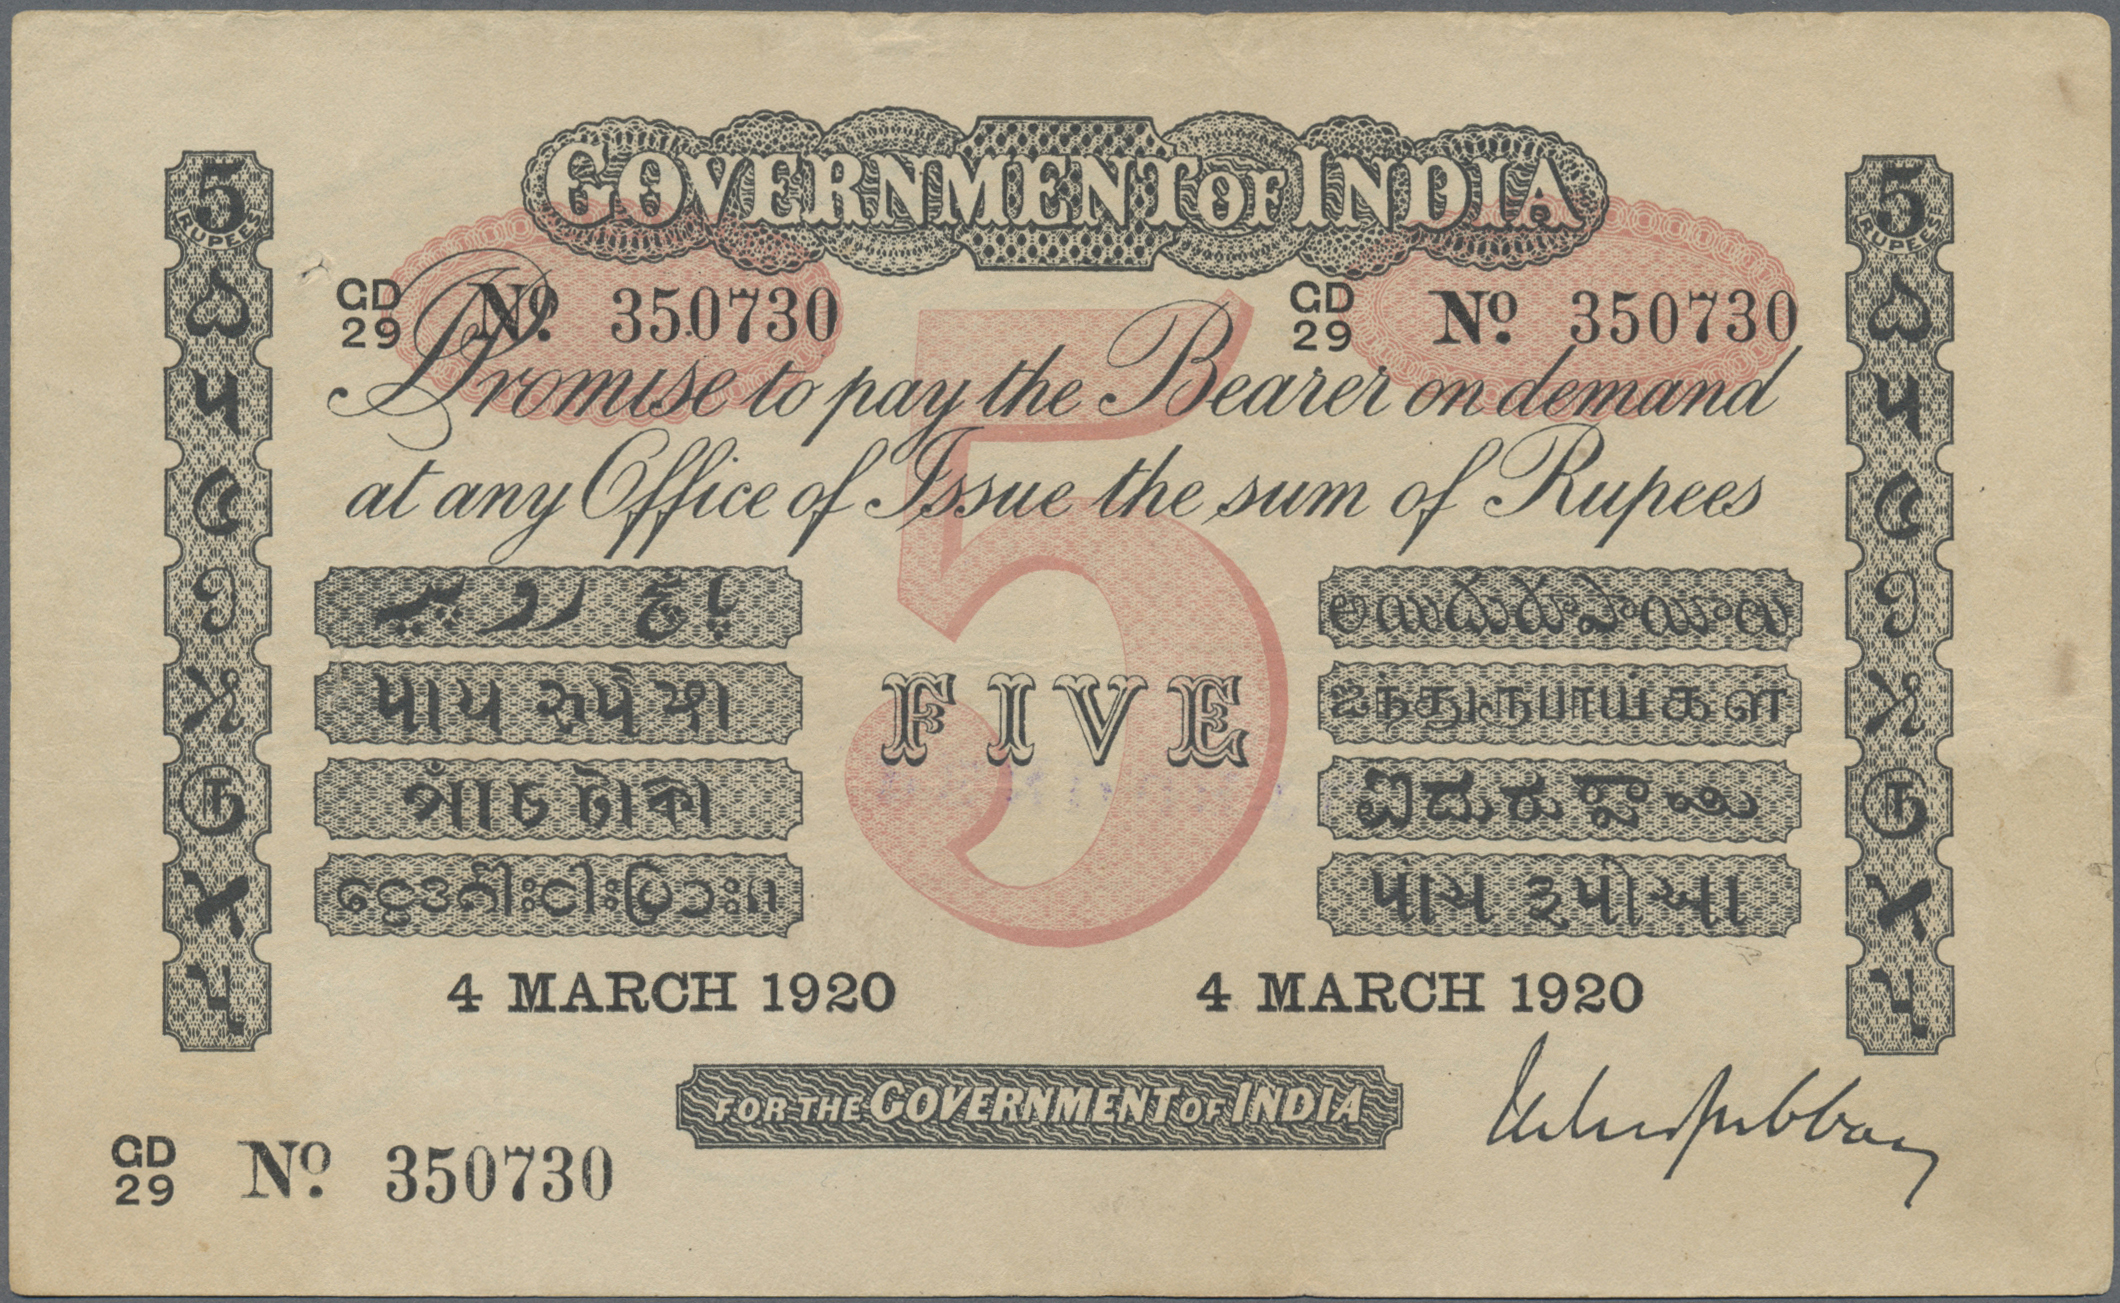 Lot 810 - India / Indien | Banknoten  -  Auktionshaus Christoph Gärtner GmbH & Co. KG Banknotes Worldwide Auction #39 Day 1